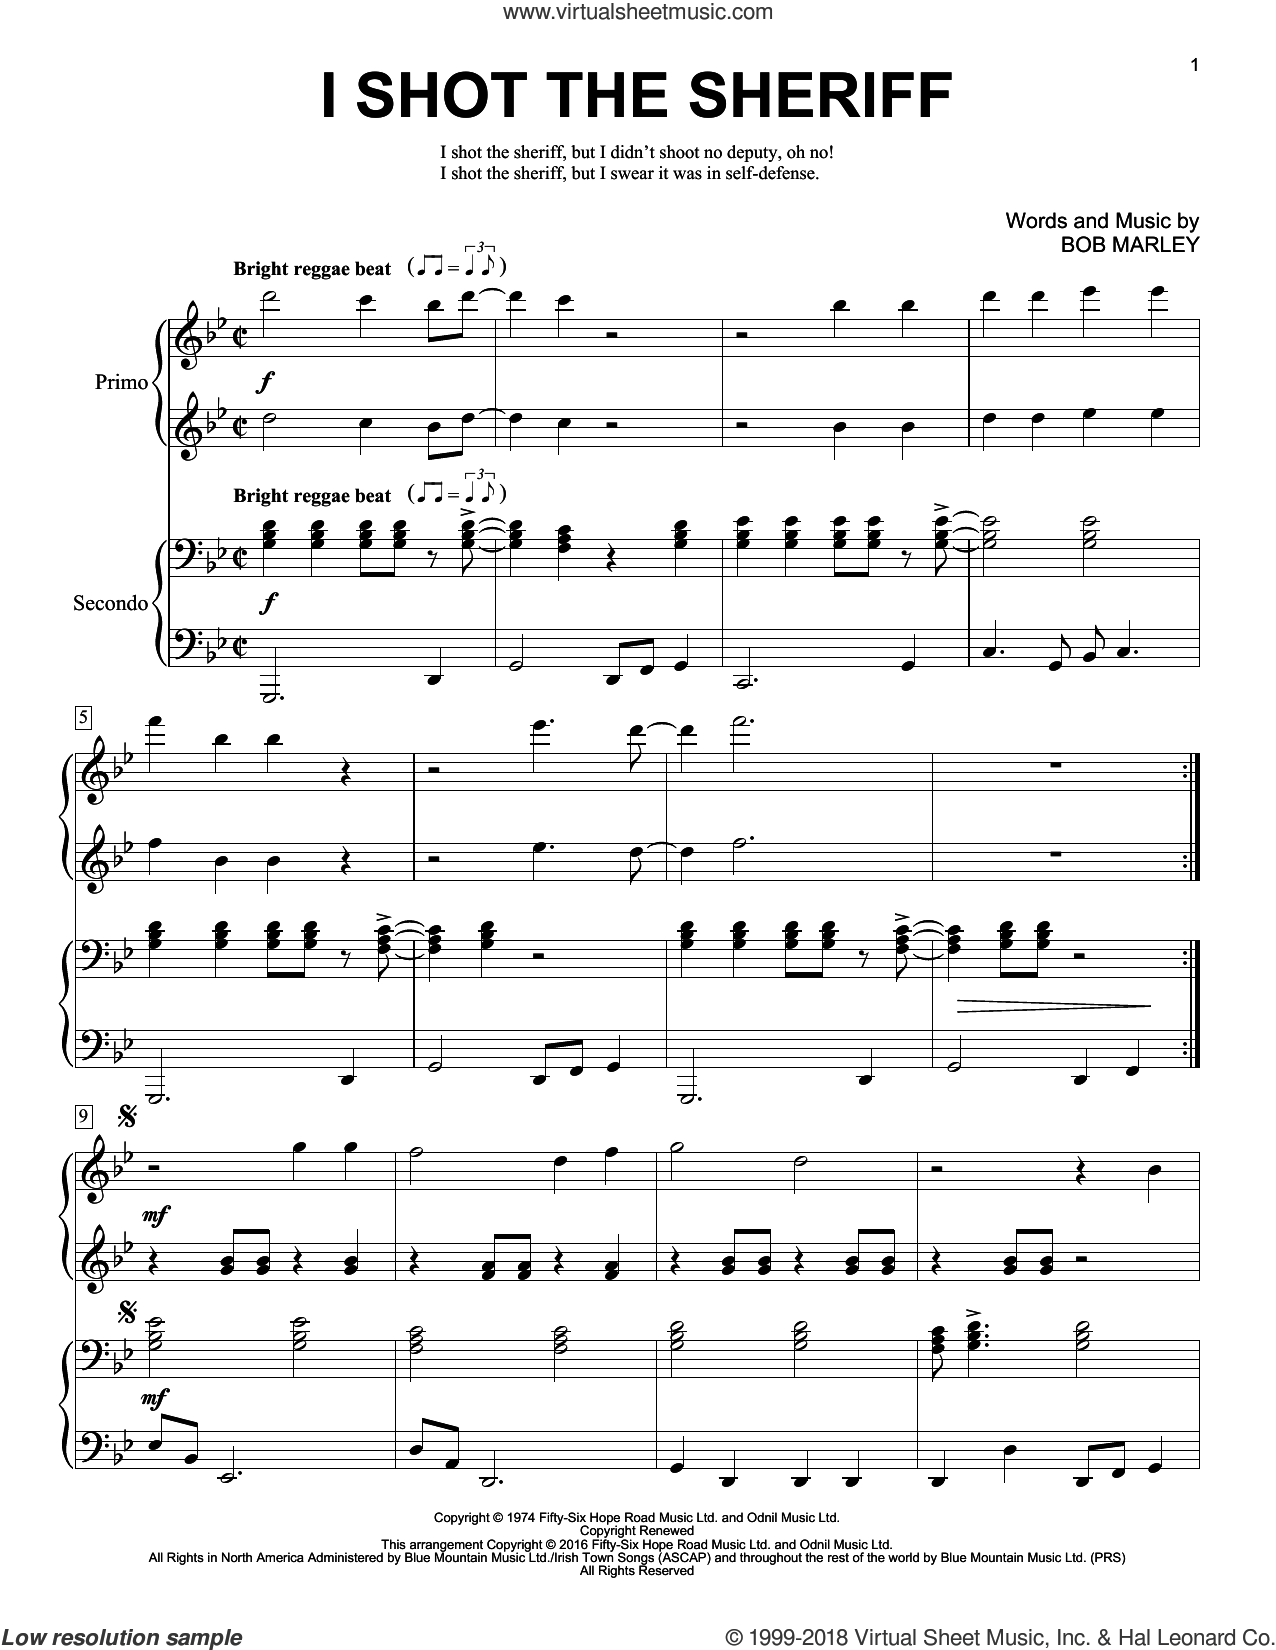 I Shot The Sheriff sheet music for piano four hands by Bob Marley, Brent Edstrom, Eric Clapton and Warren G, intermediate skill level